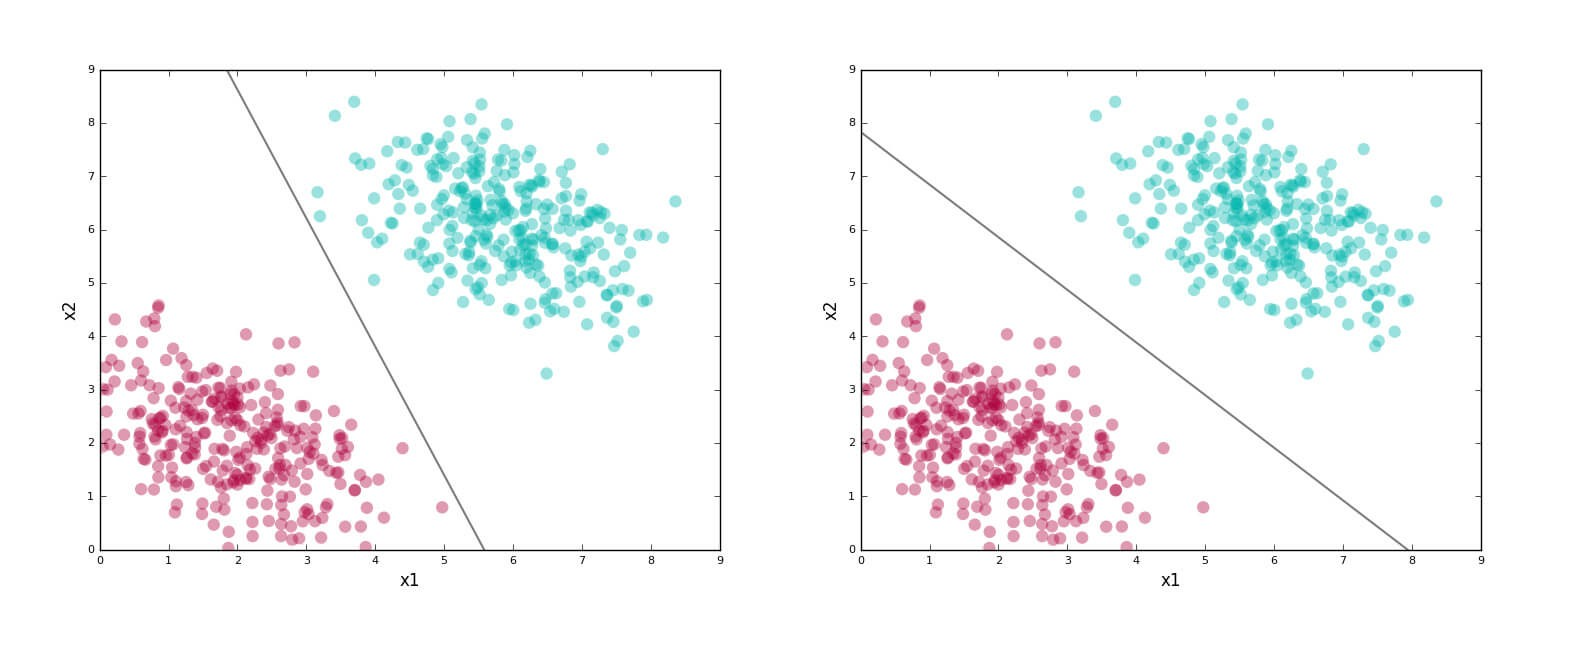 Support Vector Machine (SVM) Tutorial - Stats and Bots